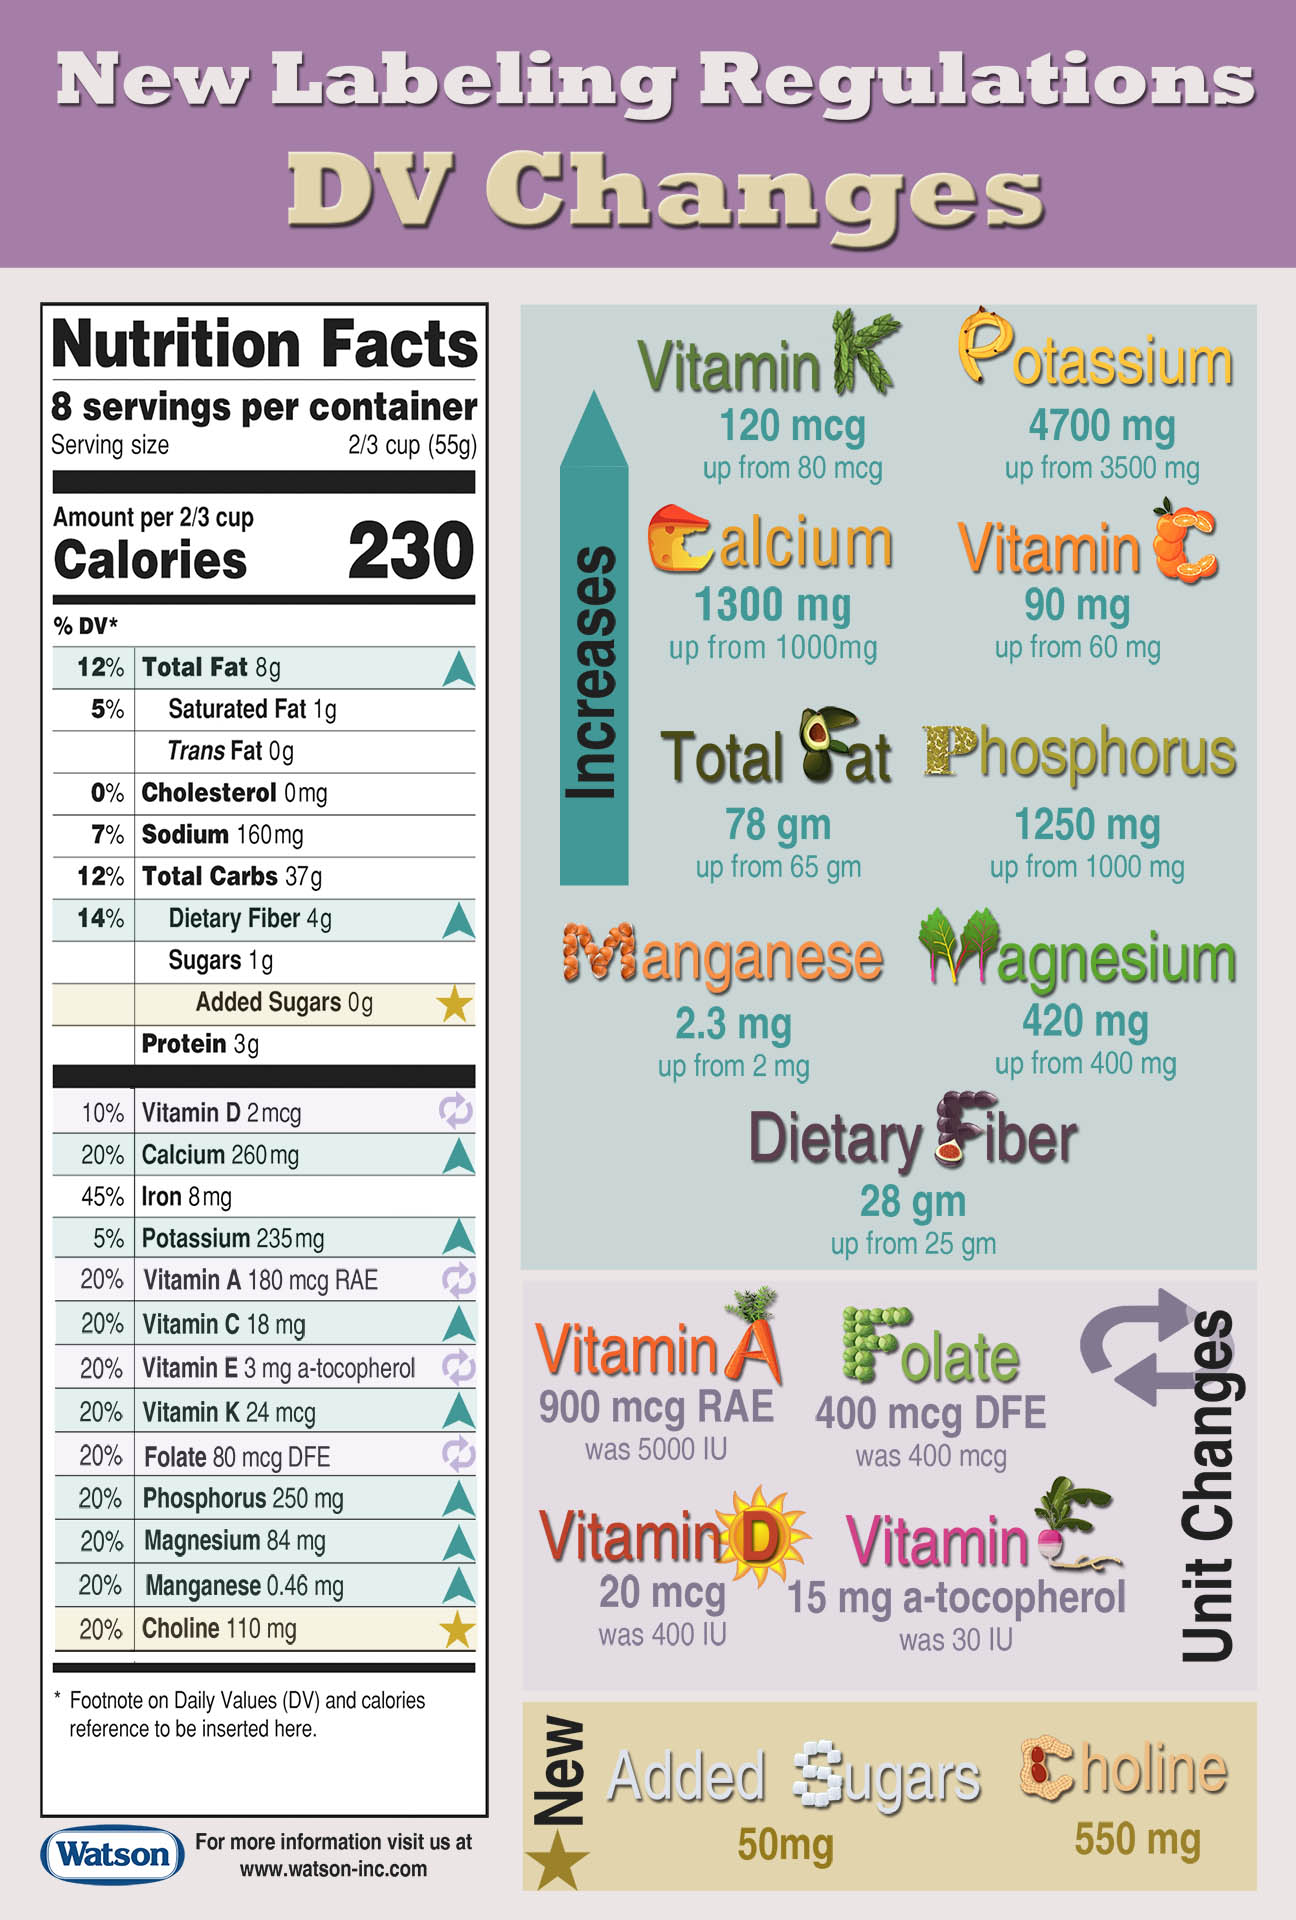 Daily Values And Unit Changes On The New Nutrition Facts Label